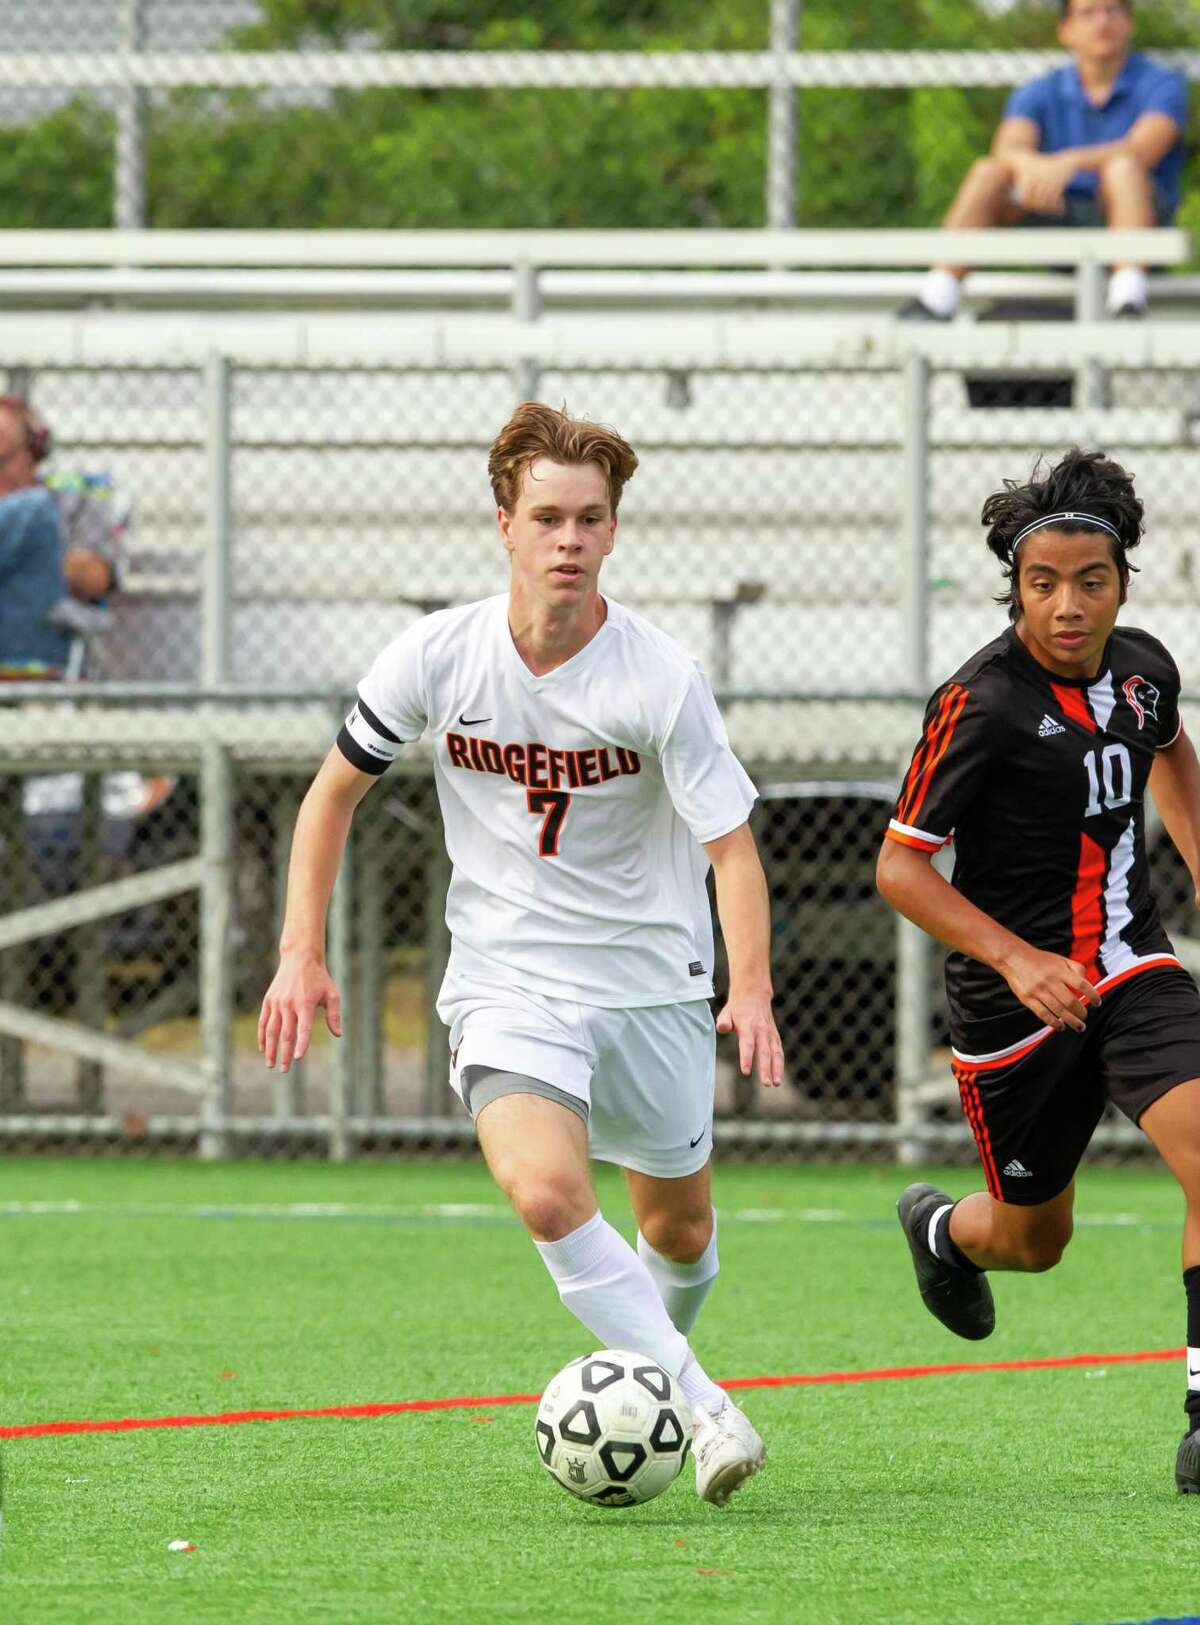 Riley Gousse controls the ball during a Ridgefield game this season.